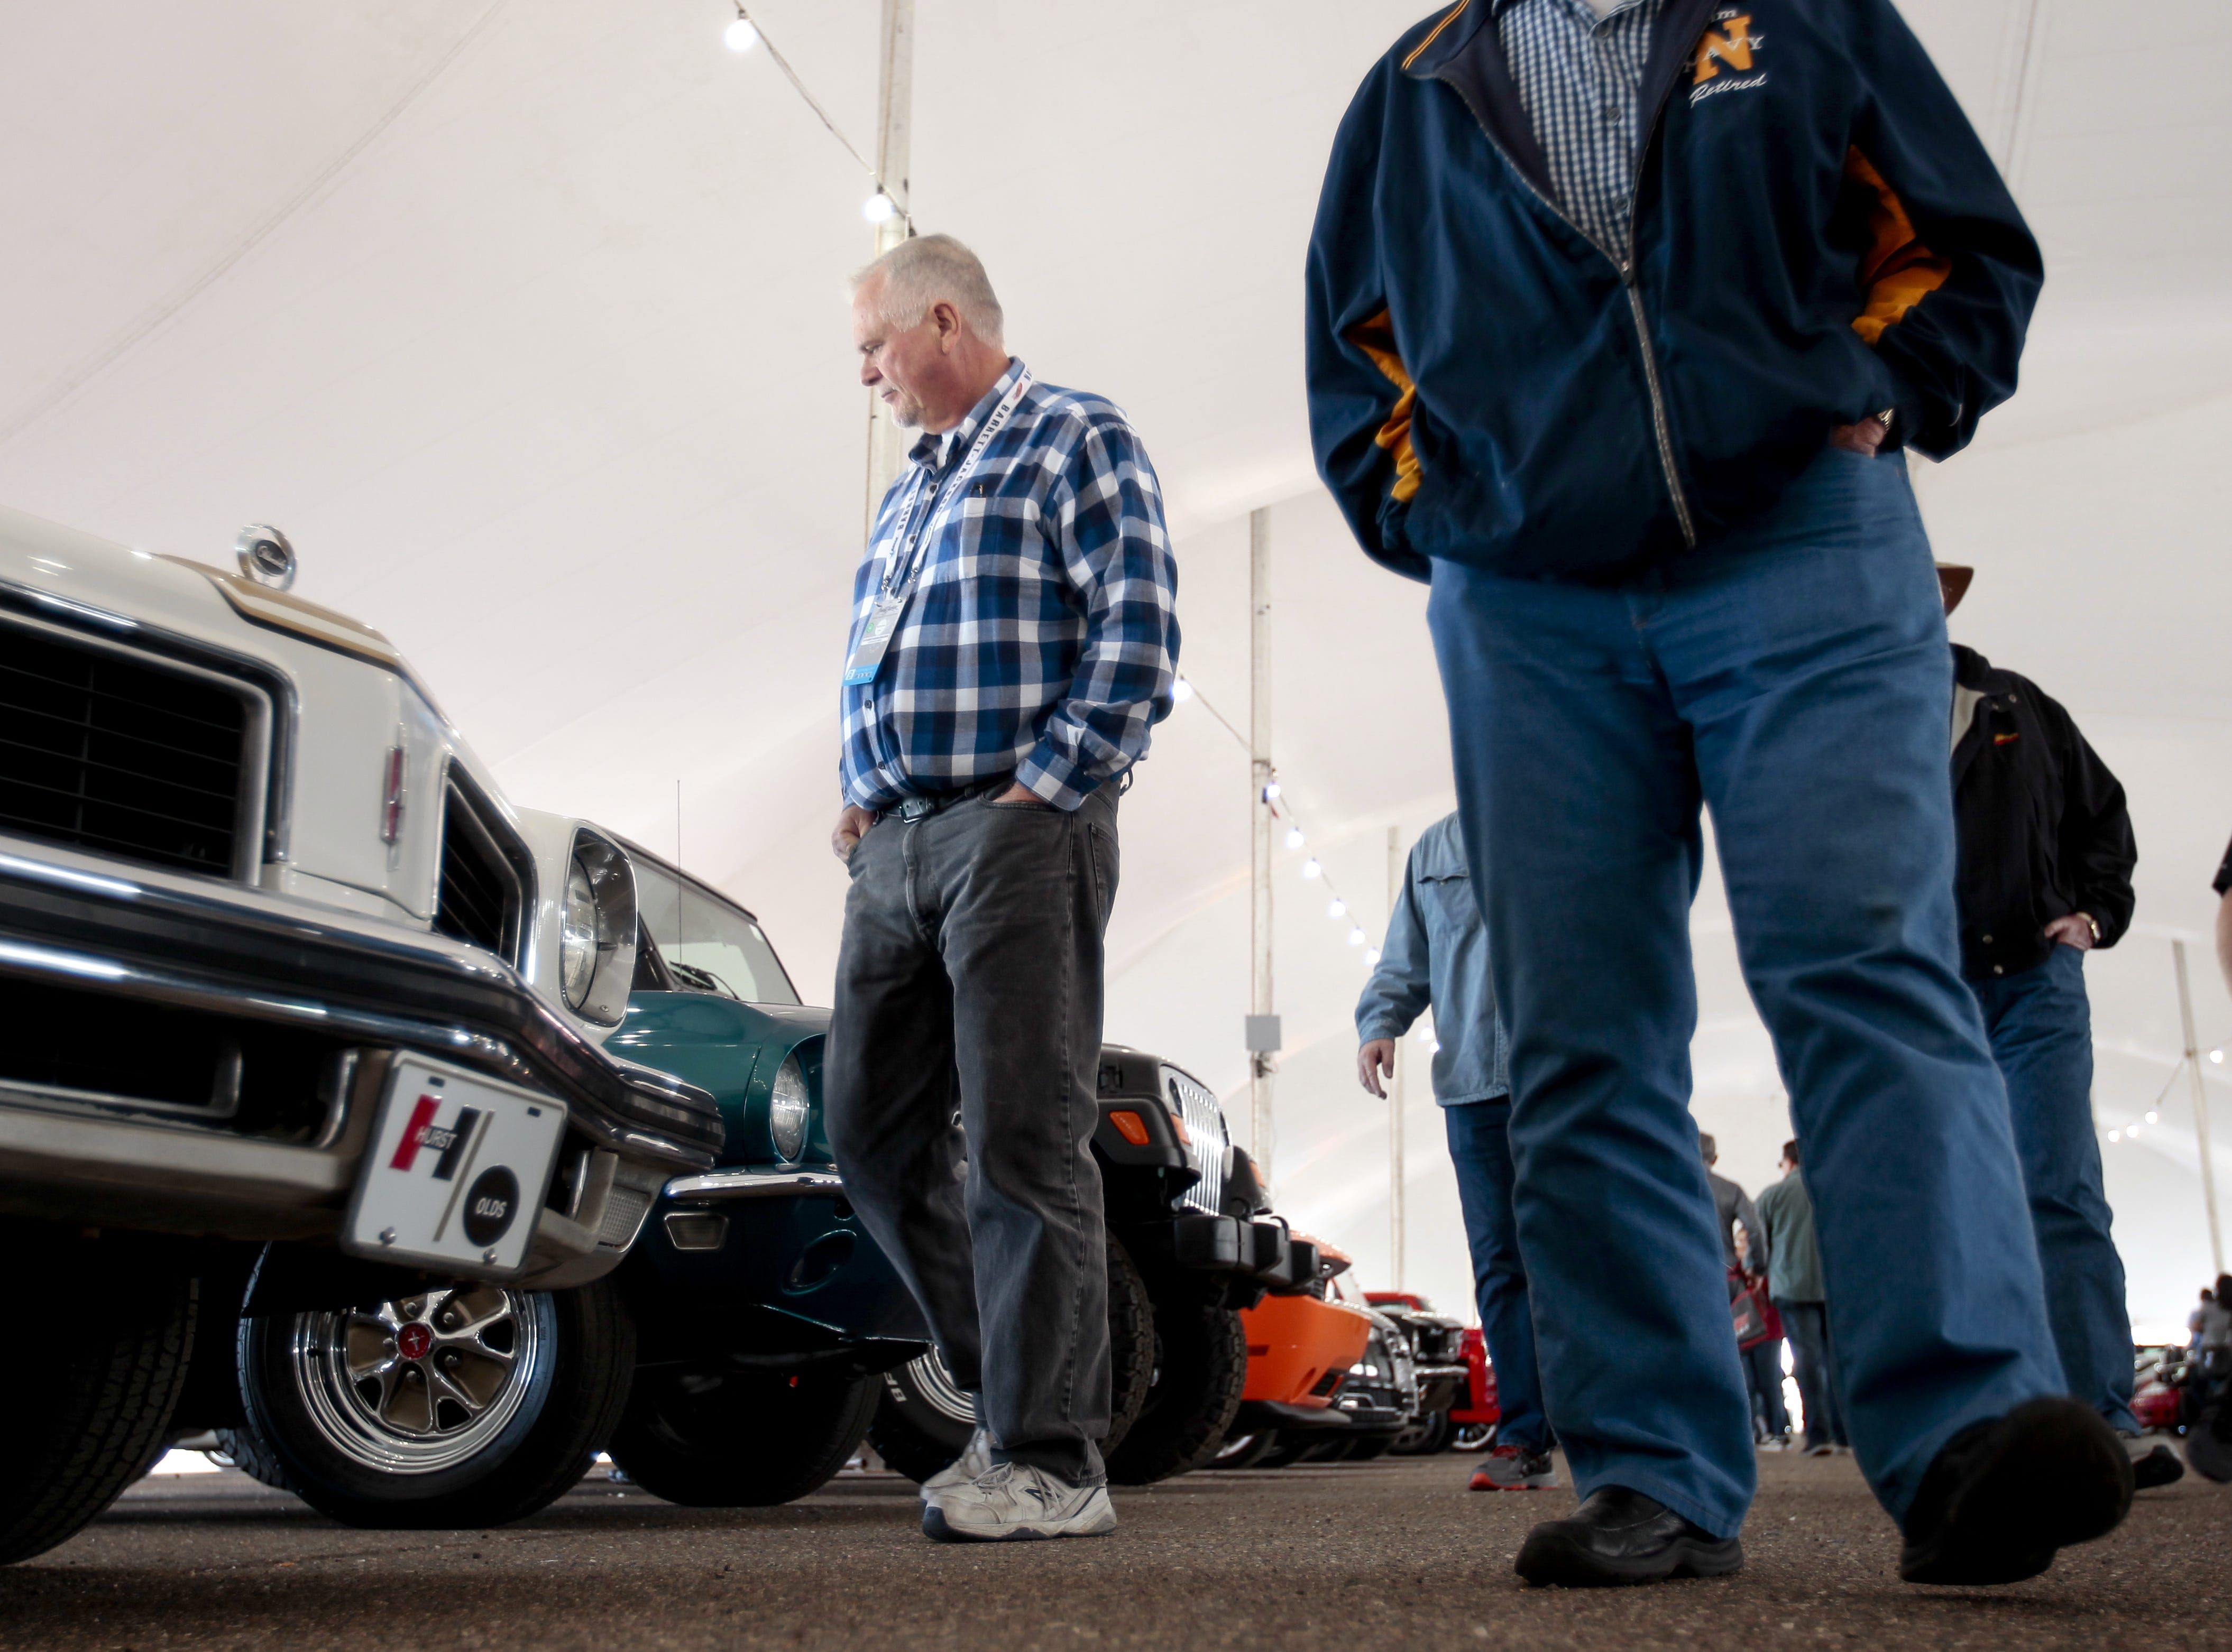 Visitors look at cars in the tents of the Barrett-Jackson Car Auction on Jan. 12, the first day of the event.